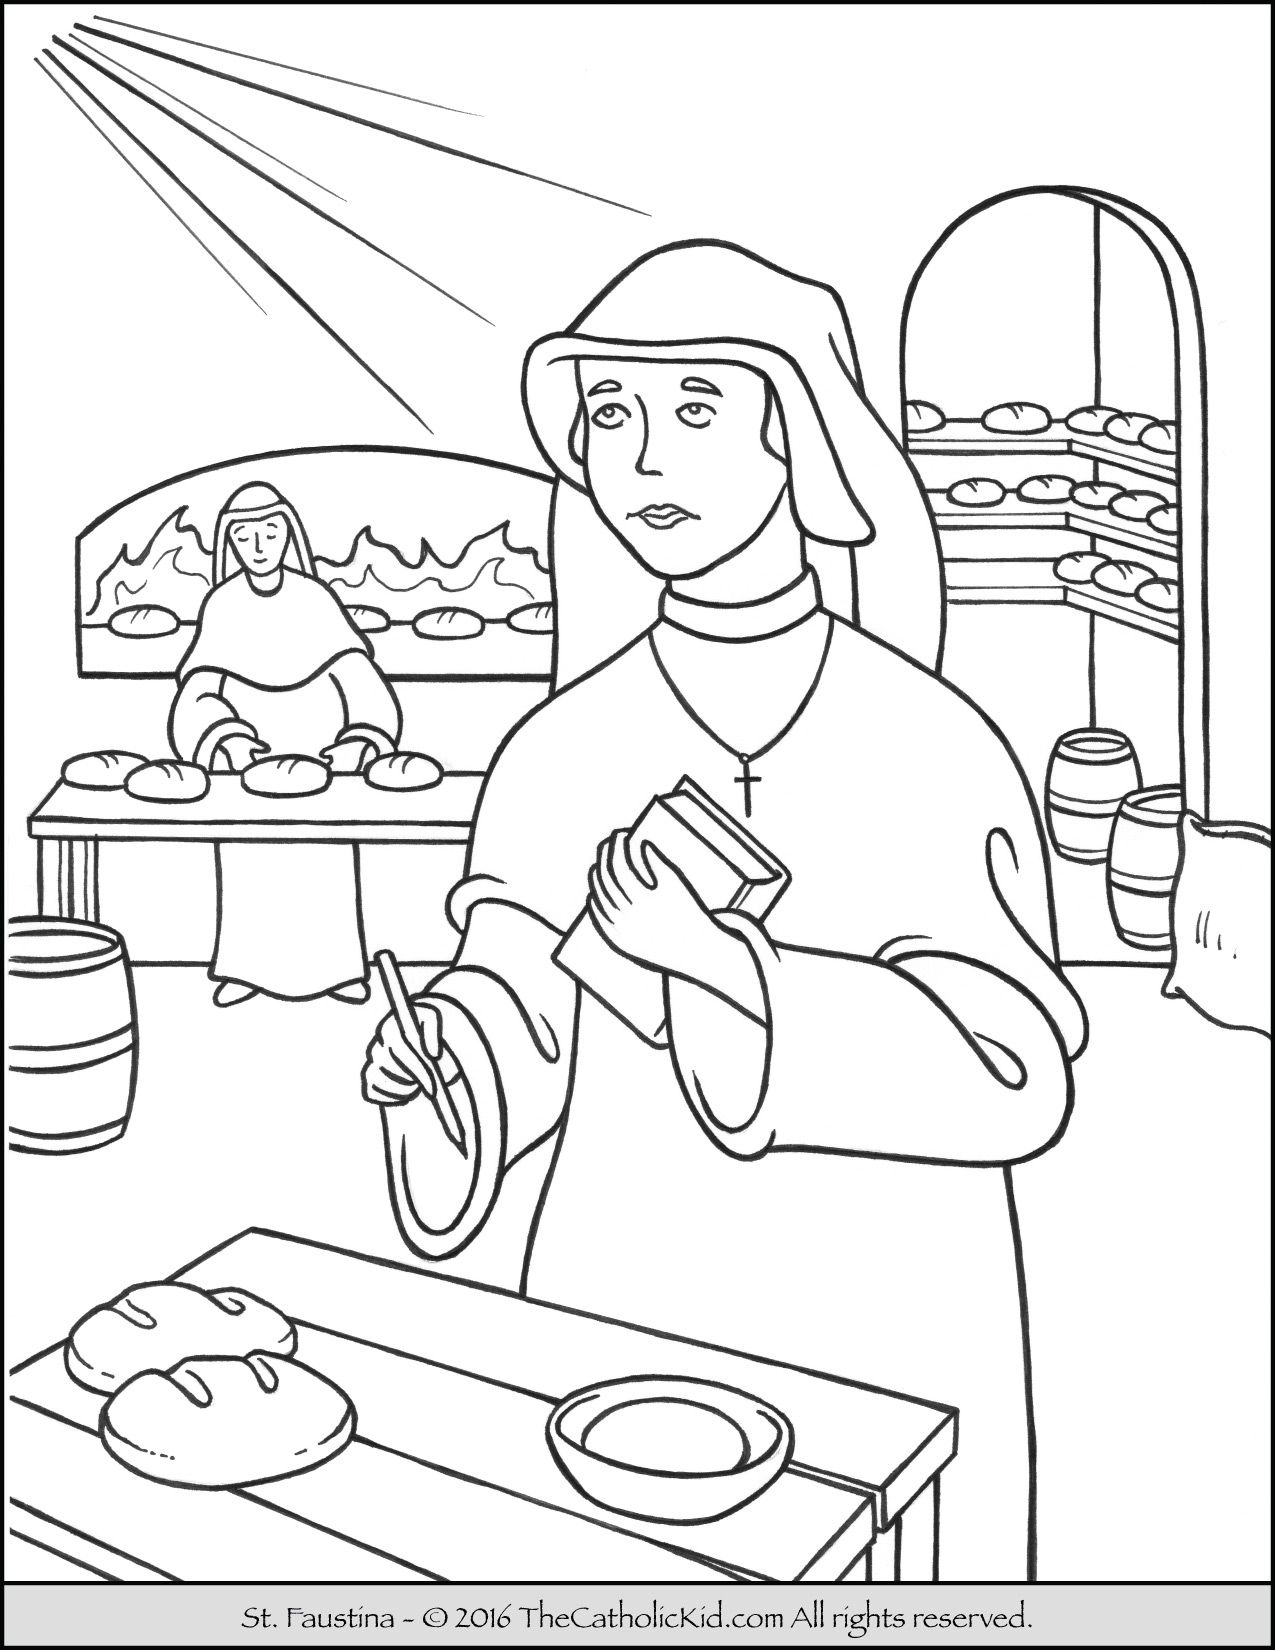 Saint Faustina Coloring Page - The Catholic Kid | Catholic Saints ...